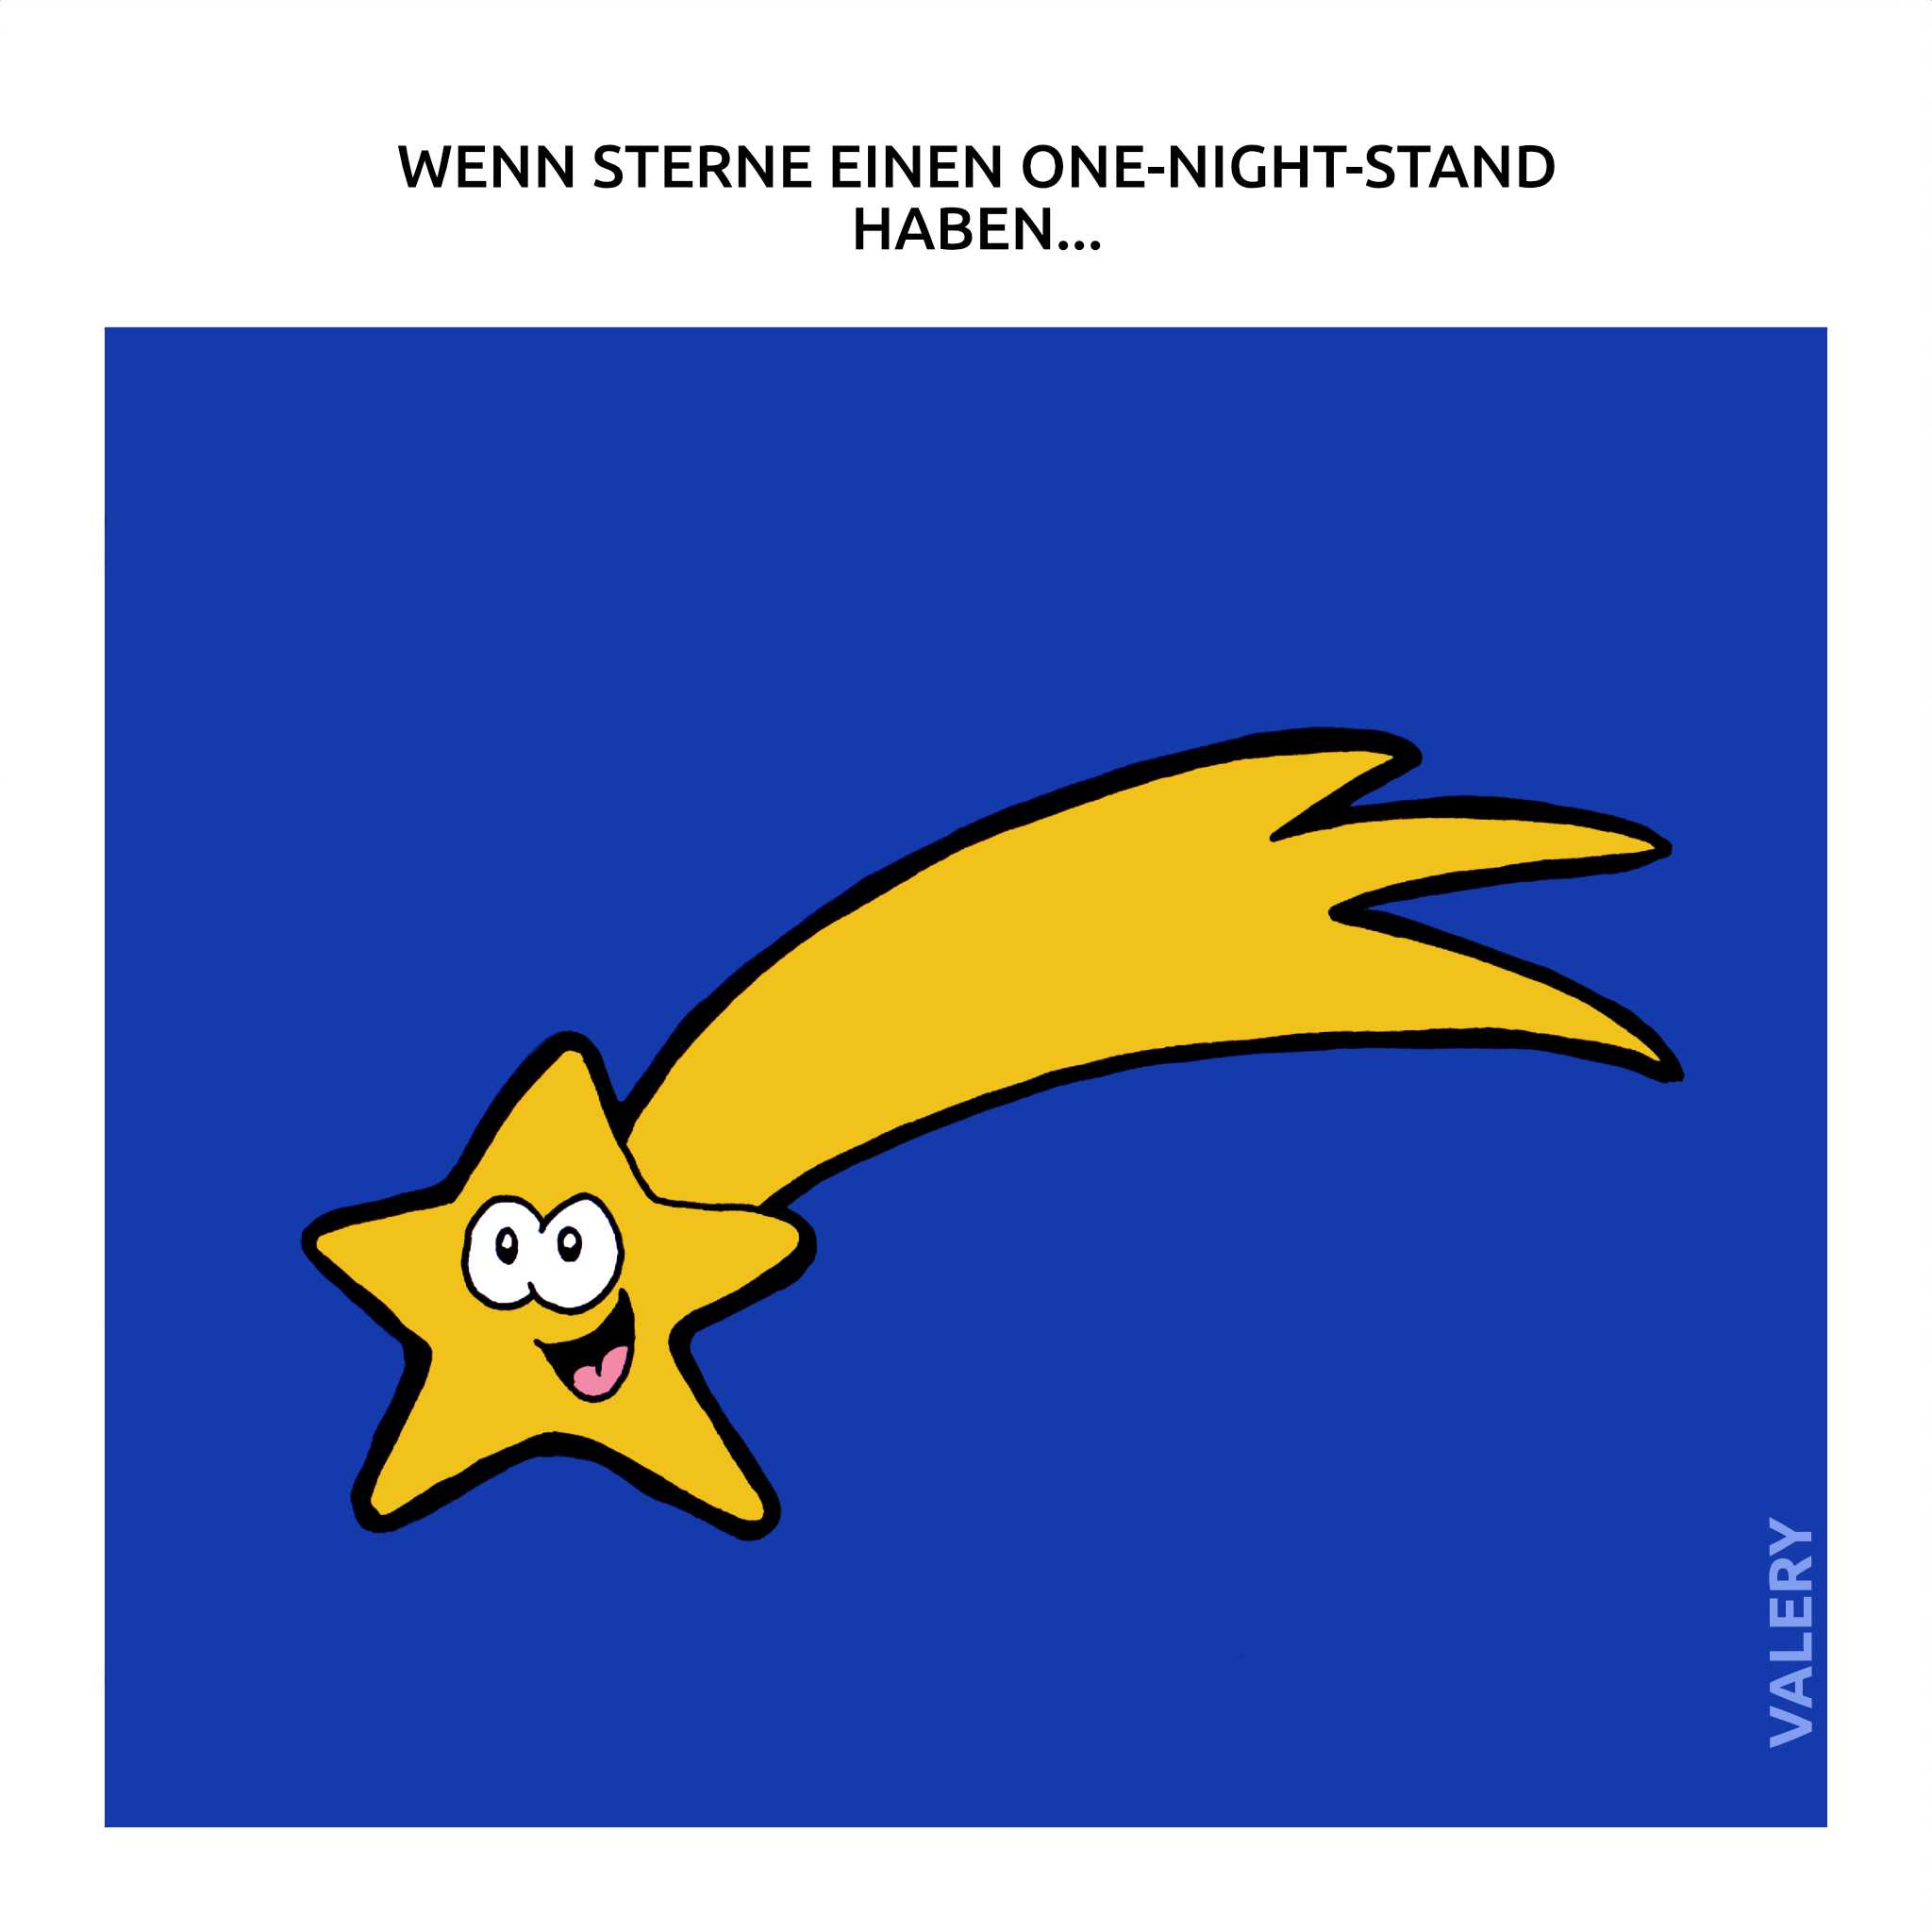 Sternschnuppe One-Night-Stand Cartoon